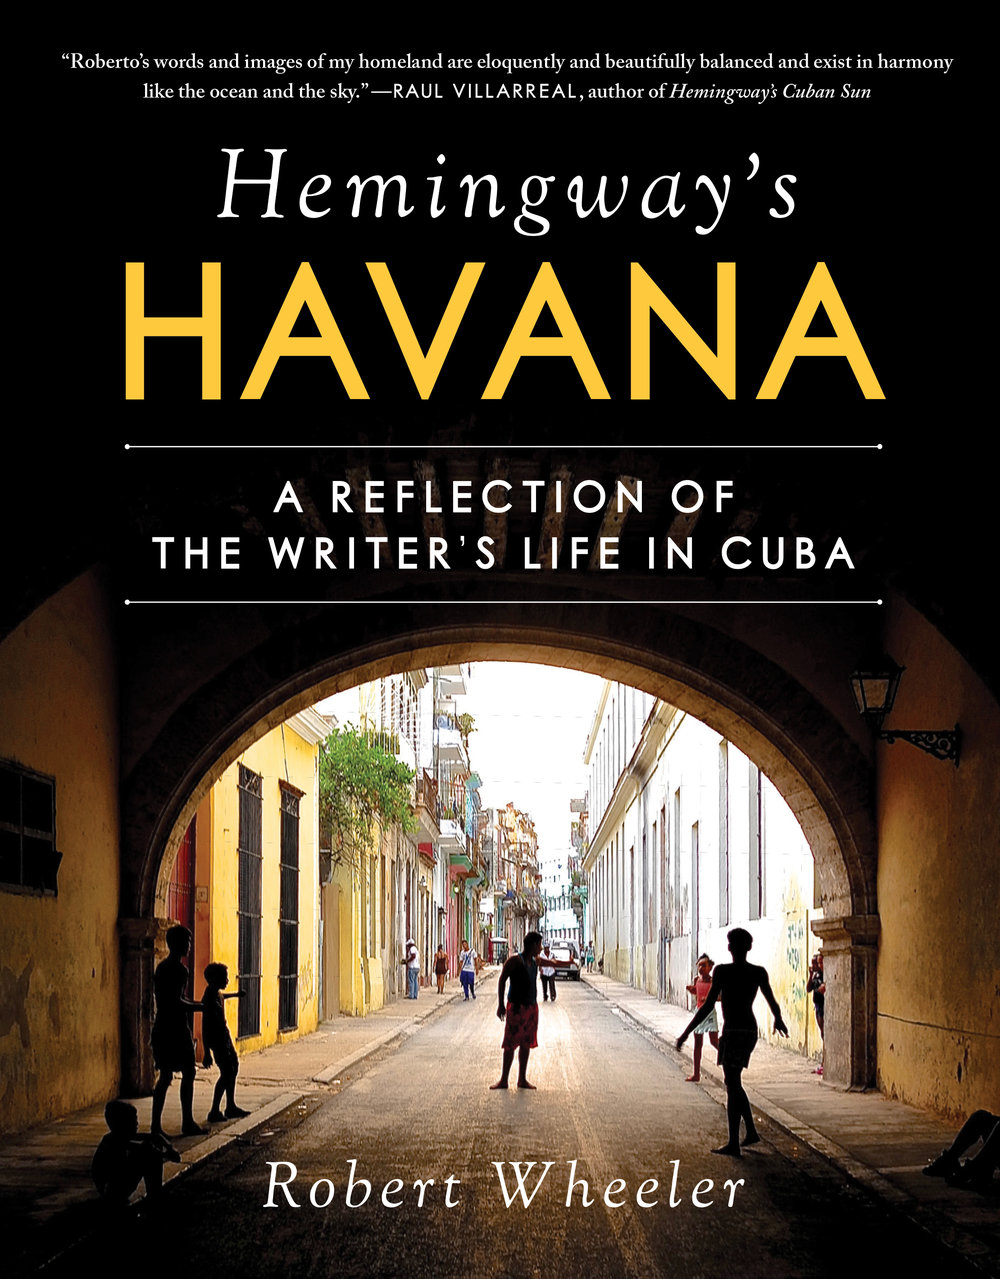 Hemingways-Havana-JACKET-MARKS.jpg